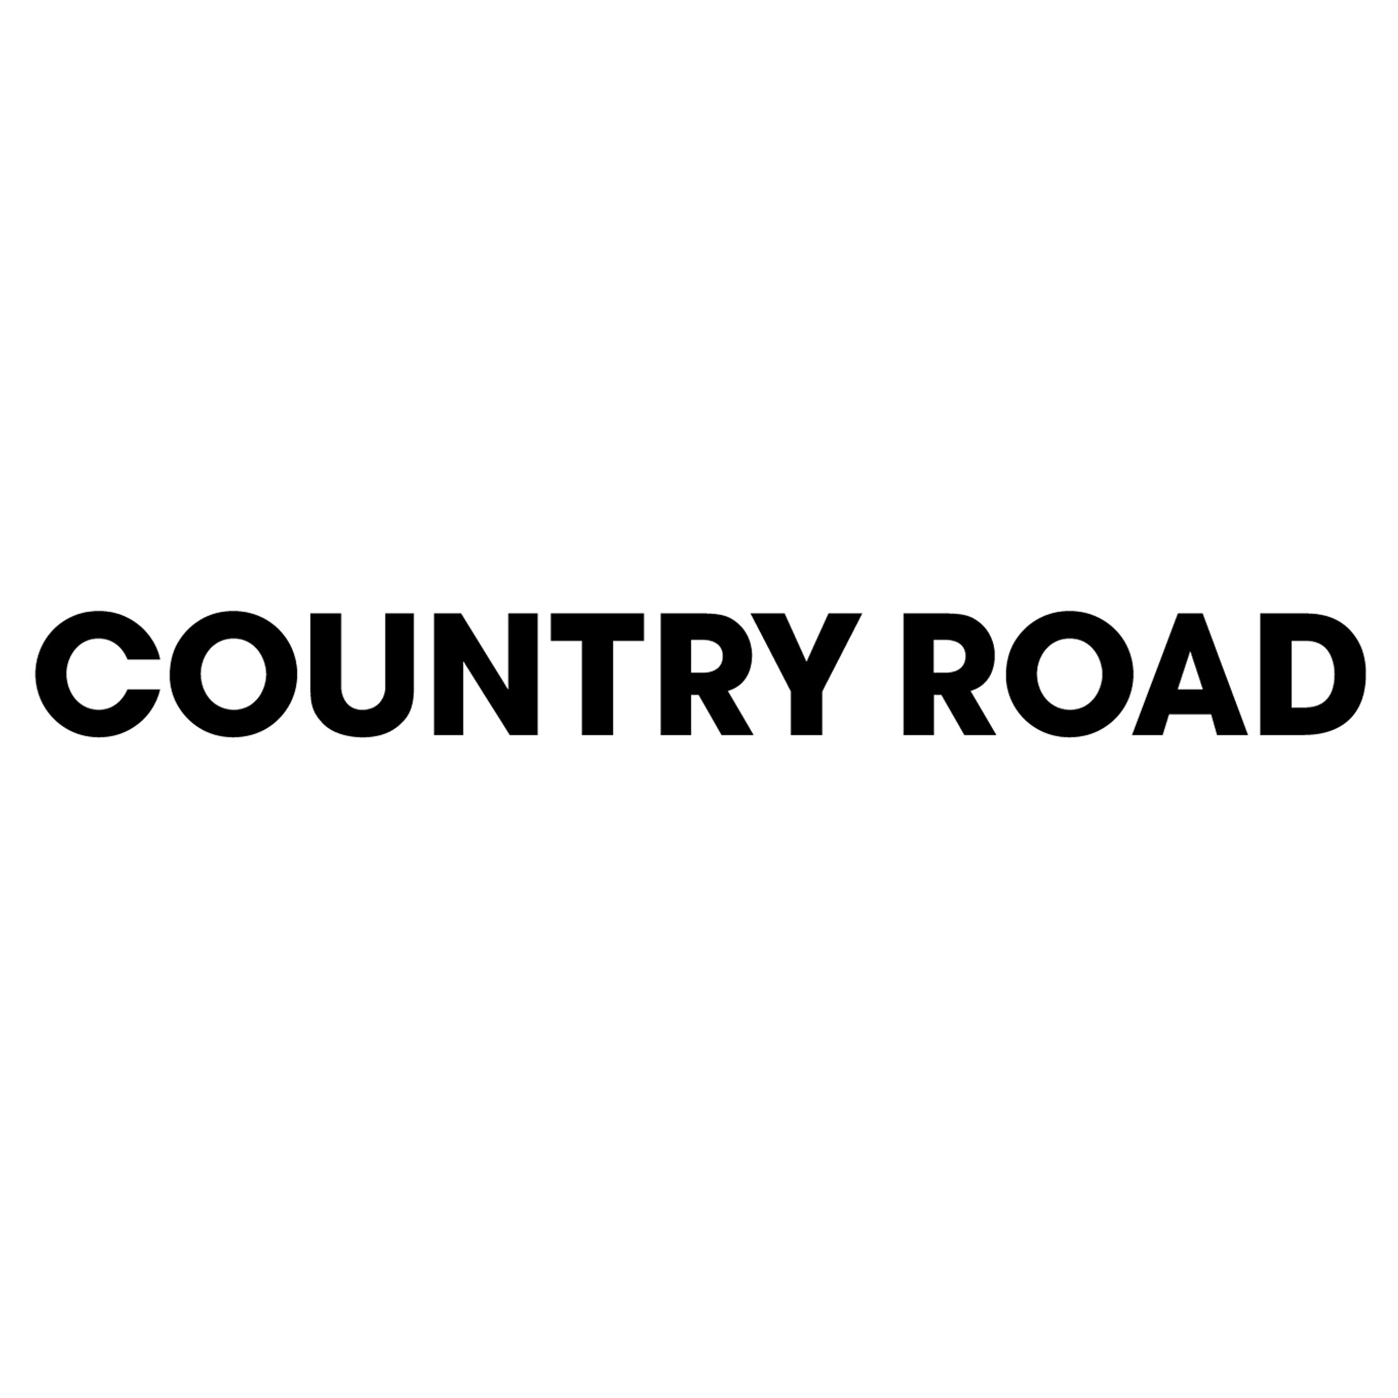 Country_Road_logo copy.jpg